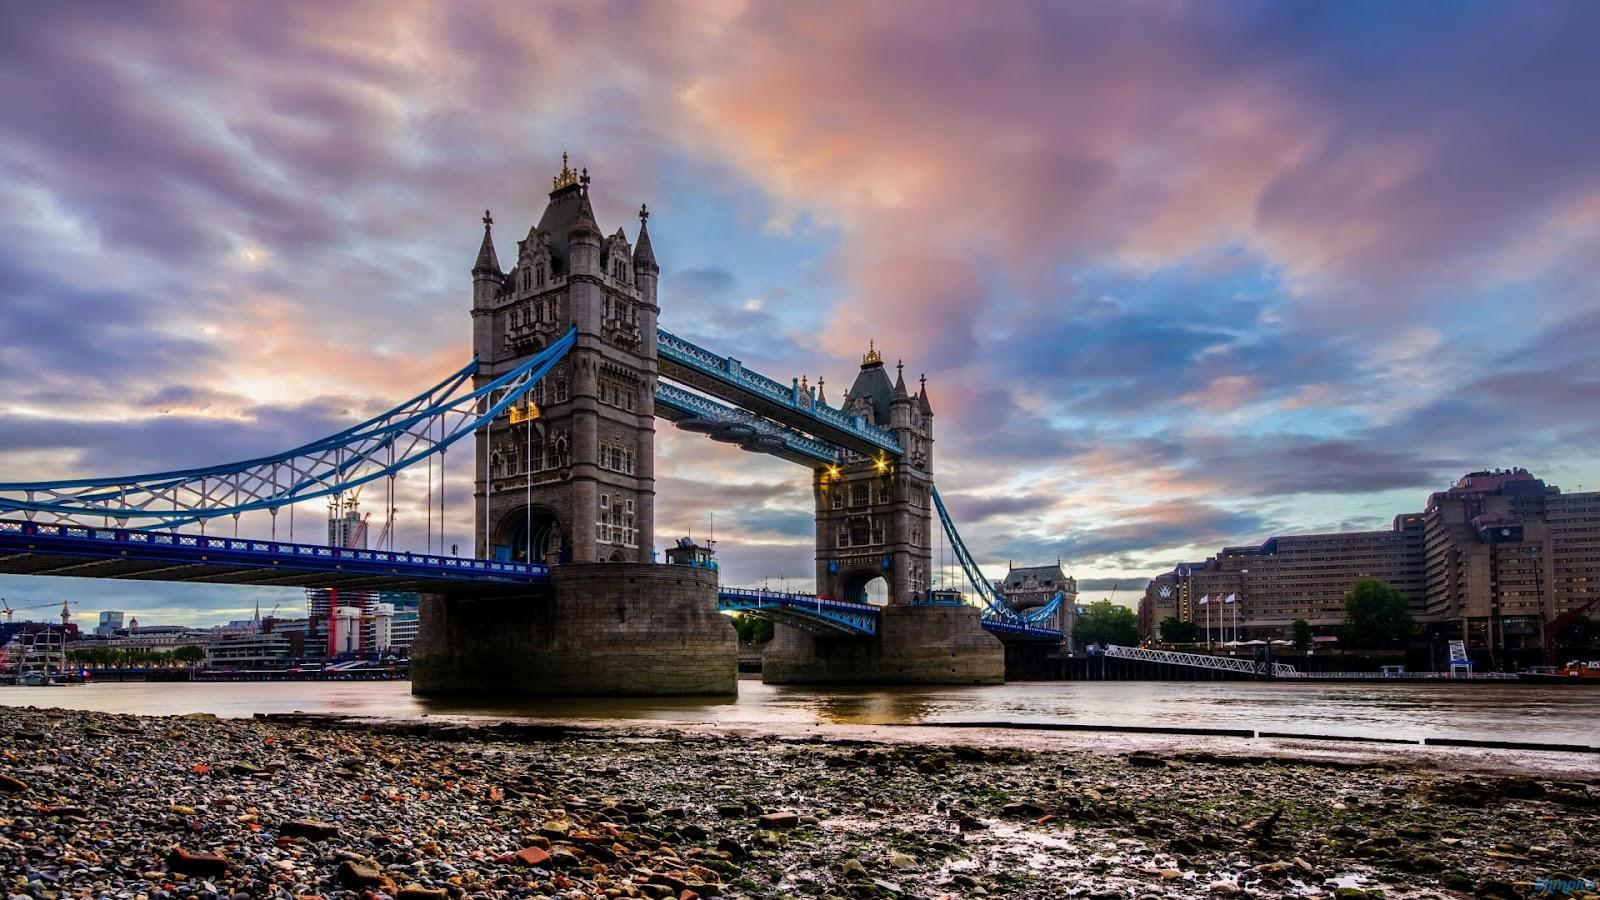 Tower Bridge Wallpaper 19 - 1600 X 900 | stmed.net